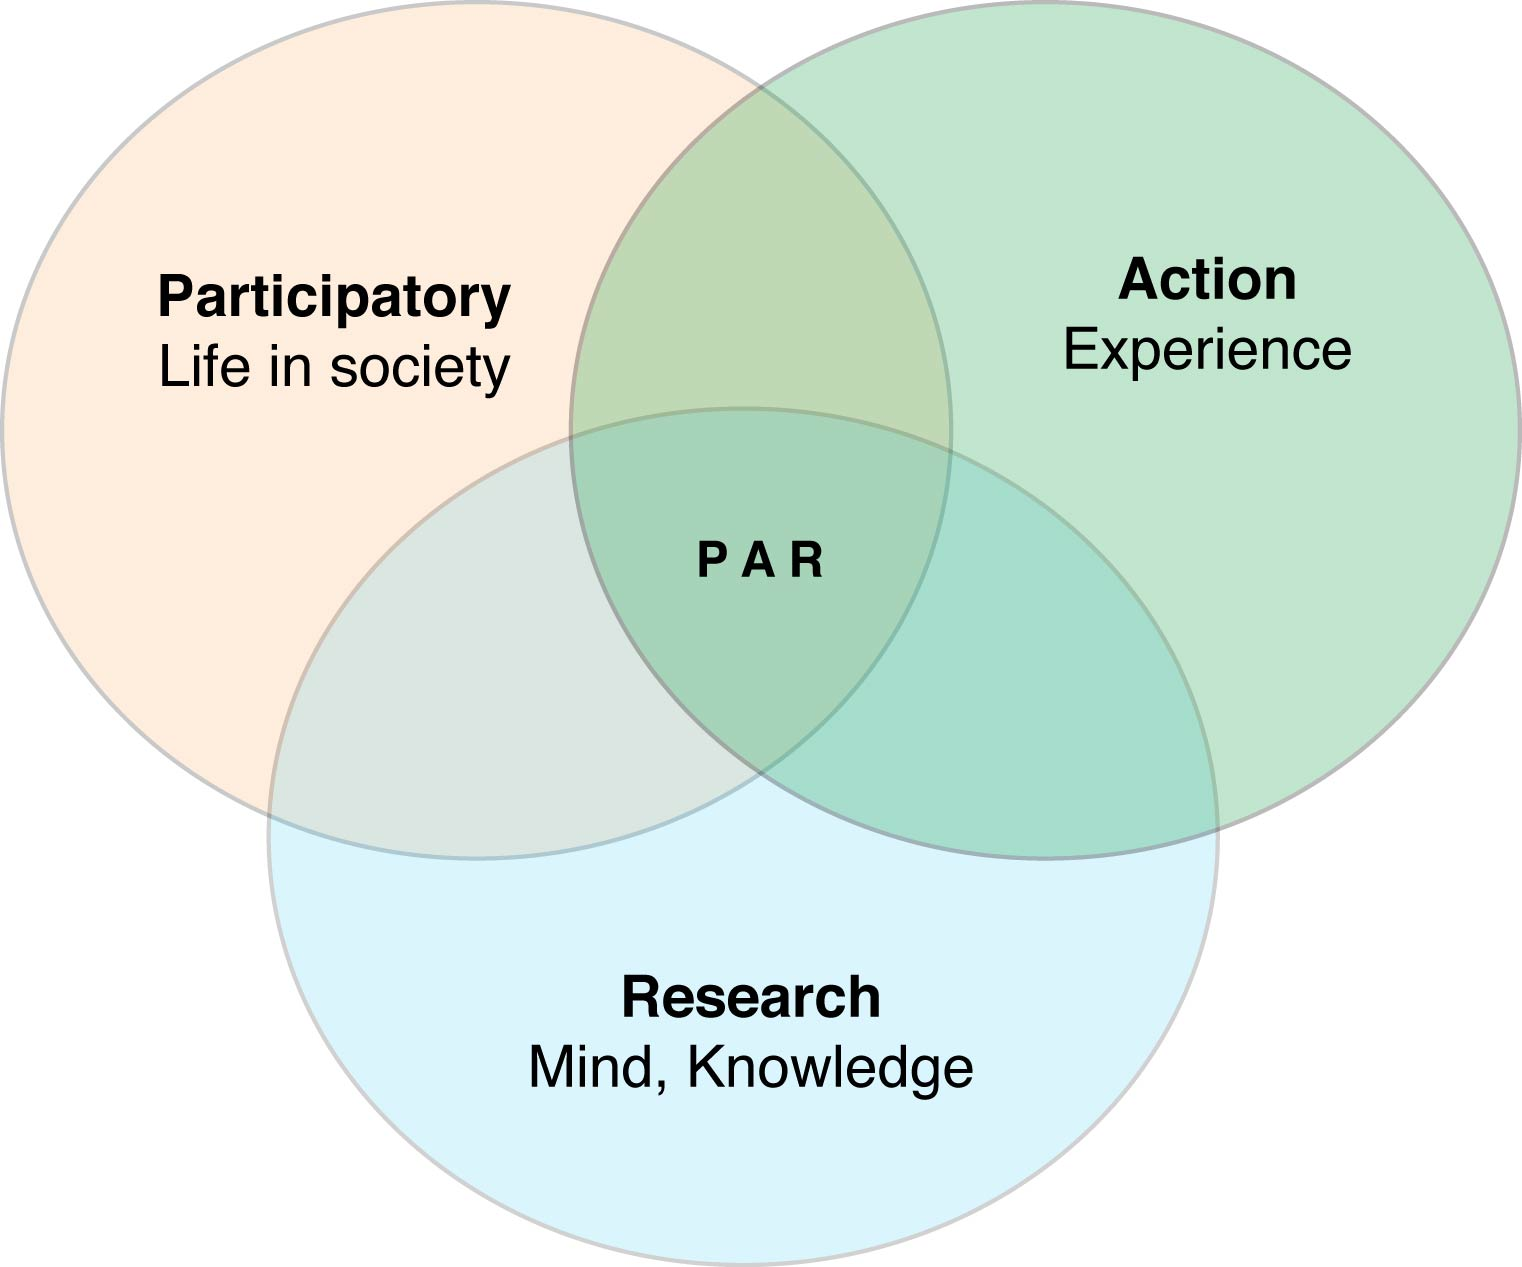 hight resolution of file venn diagram of participatory action research jpg